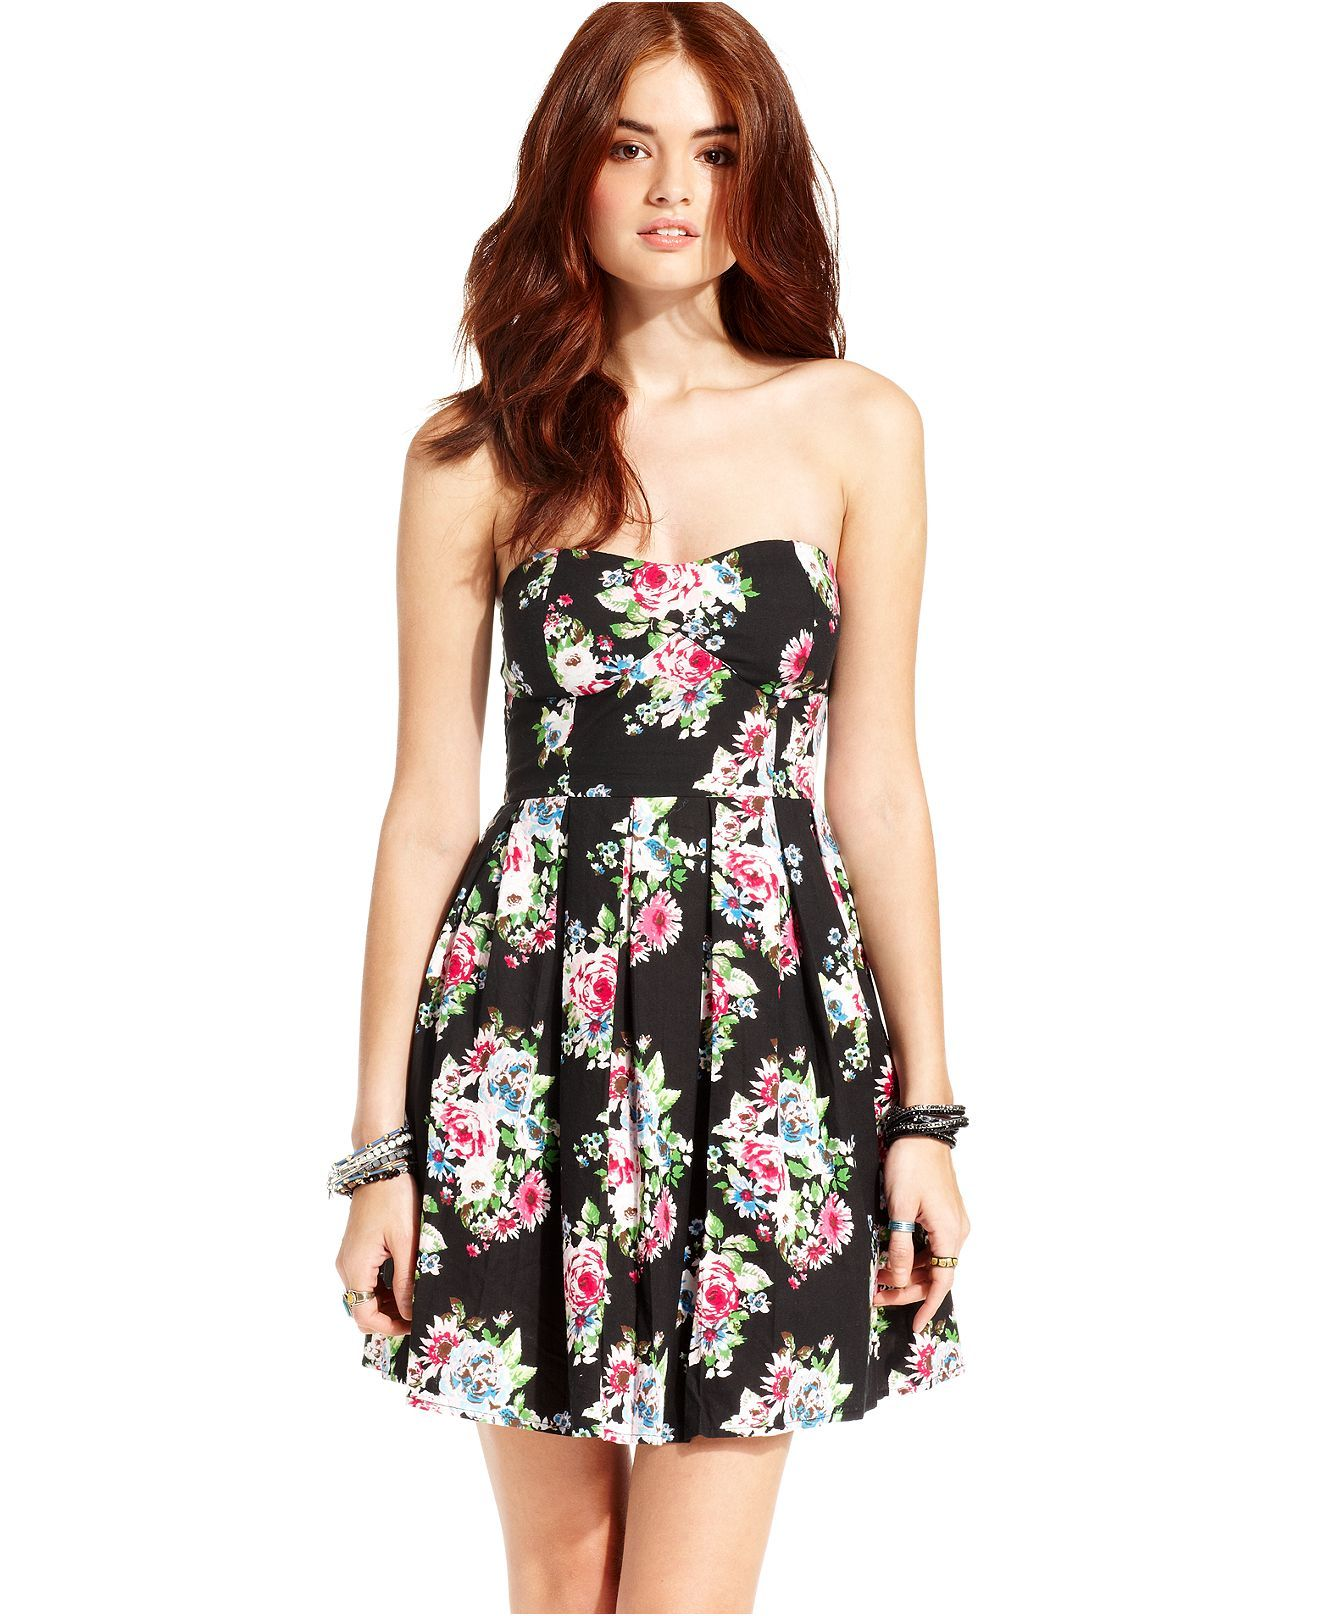 Pin By Alexis Smith On Fashion Junior Party Dresses Dresses Junior Dresses [ 1616 x 1320 Pixel ]